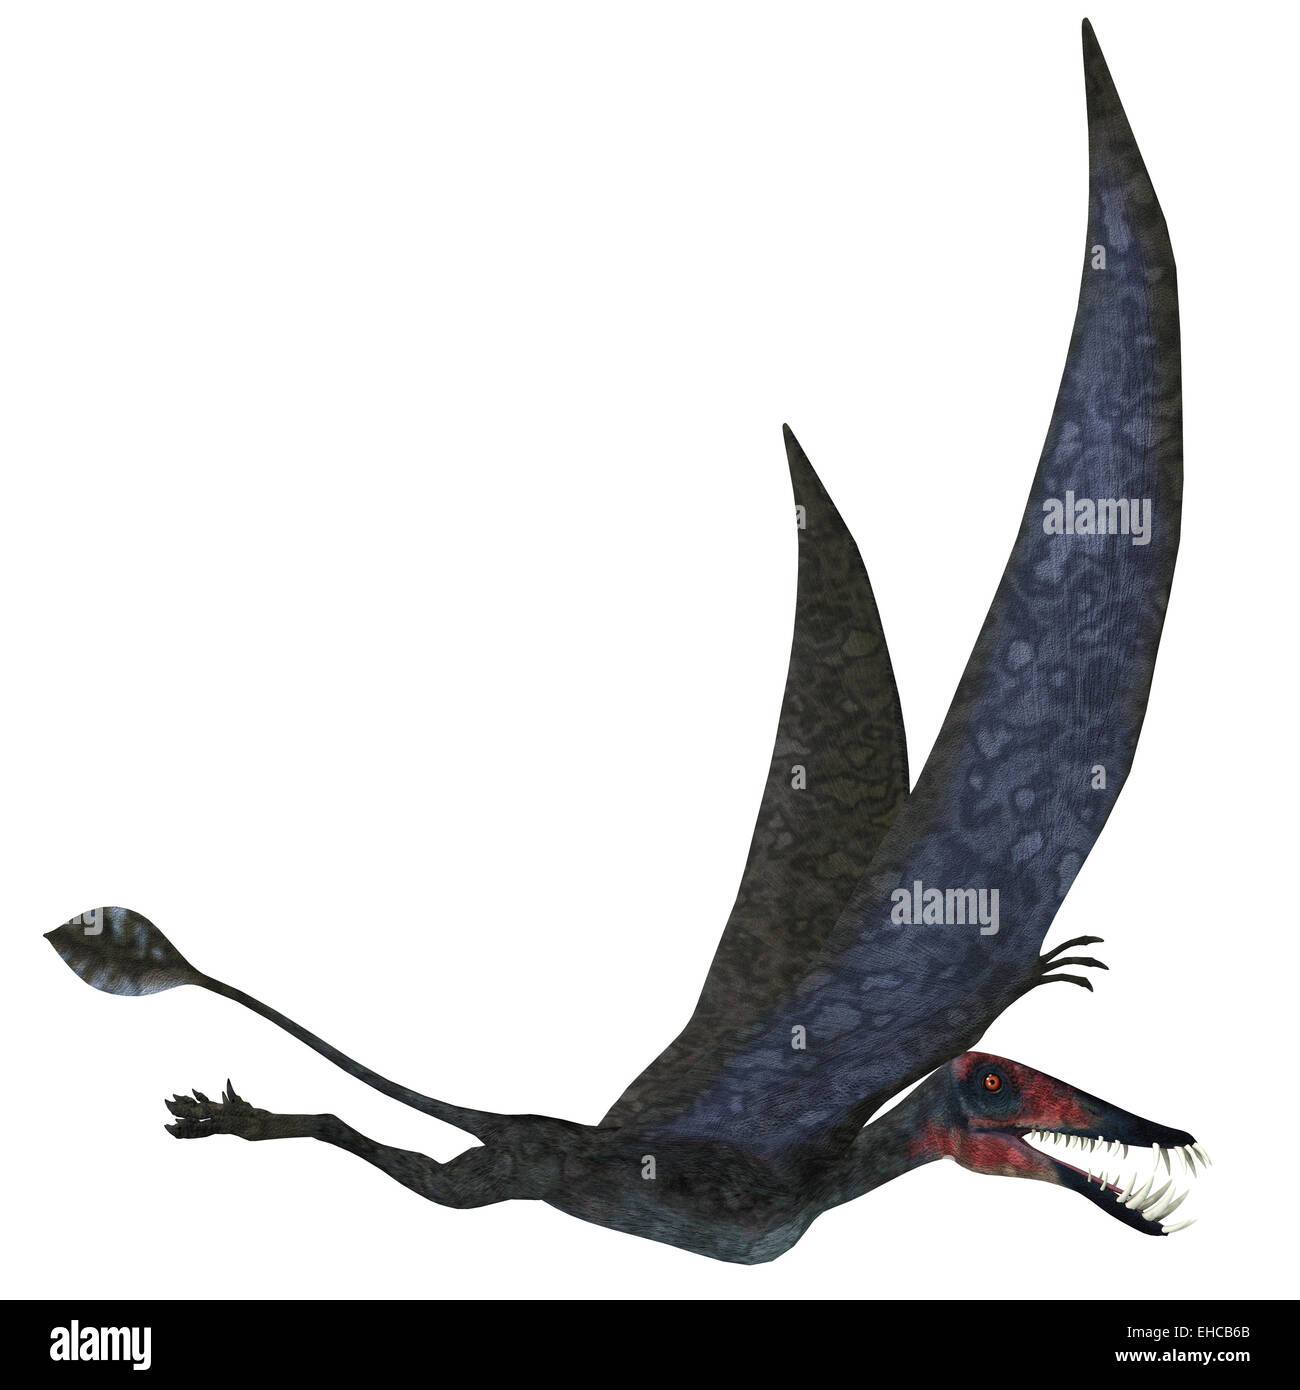 Dorygnathus was a carnivorous Pterosaur that lived in the Jurassic Era of Europe. - Stock Image